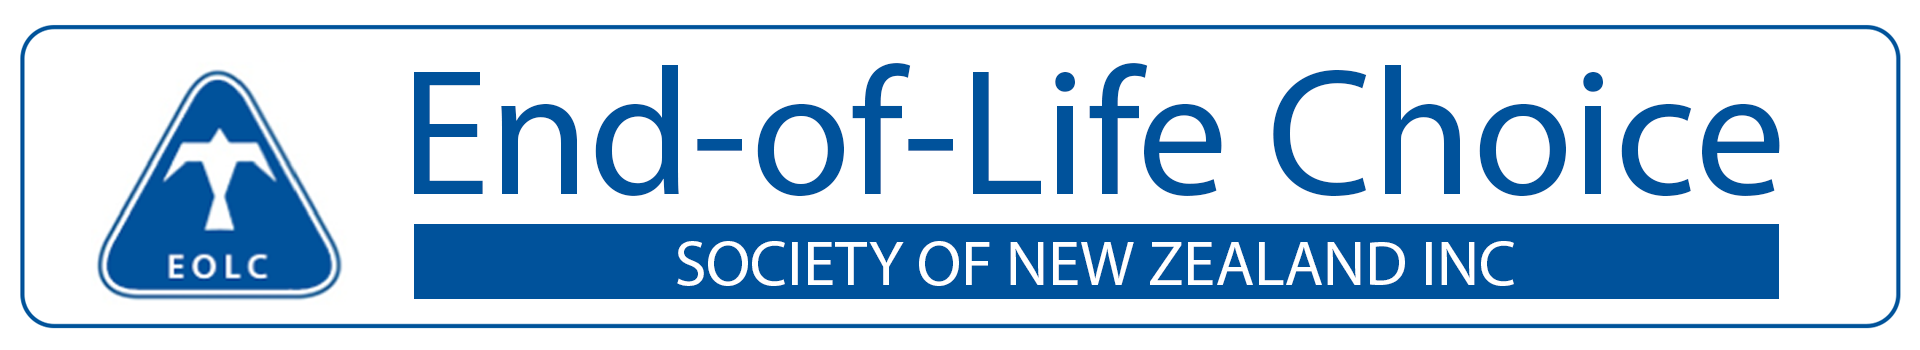 End-of-Life Choice Society of New Zealand Inc